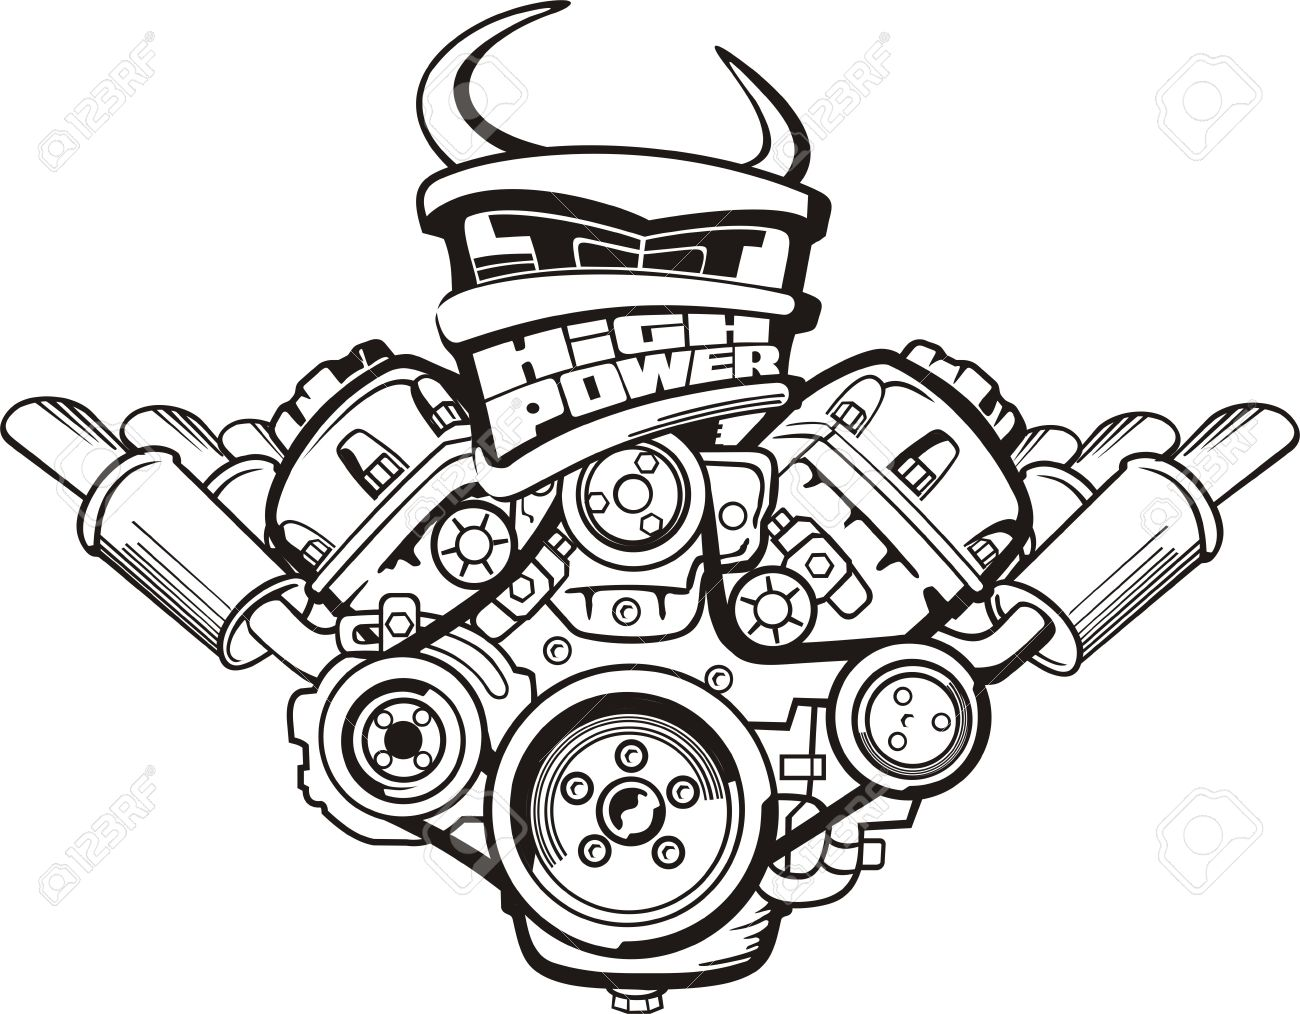 1300x1014 Drawing High Power Car Engine Sign Royalty Free Cliparts, Vectors